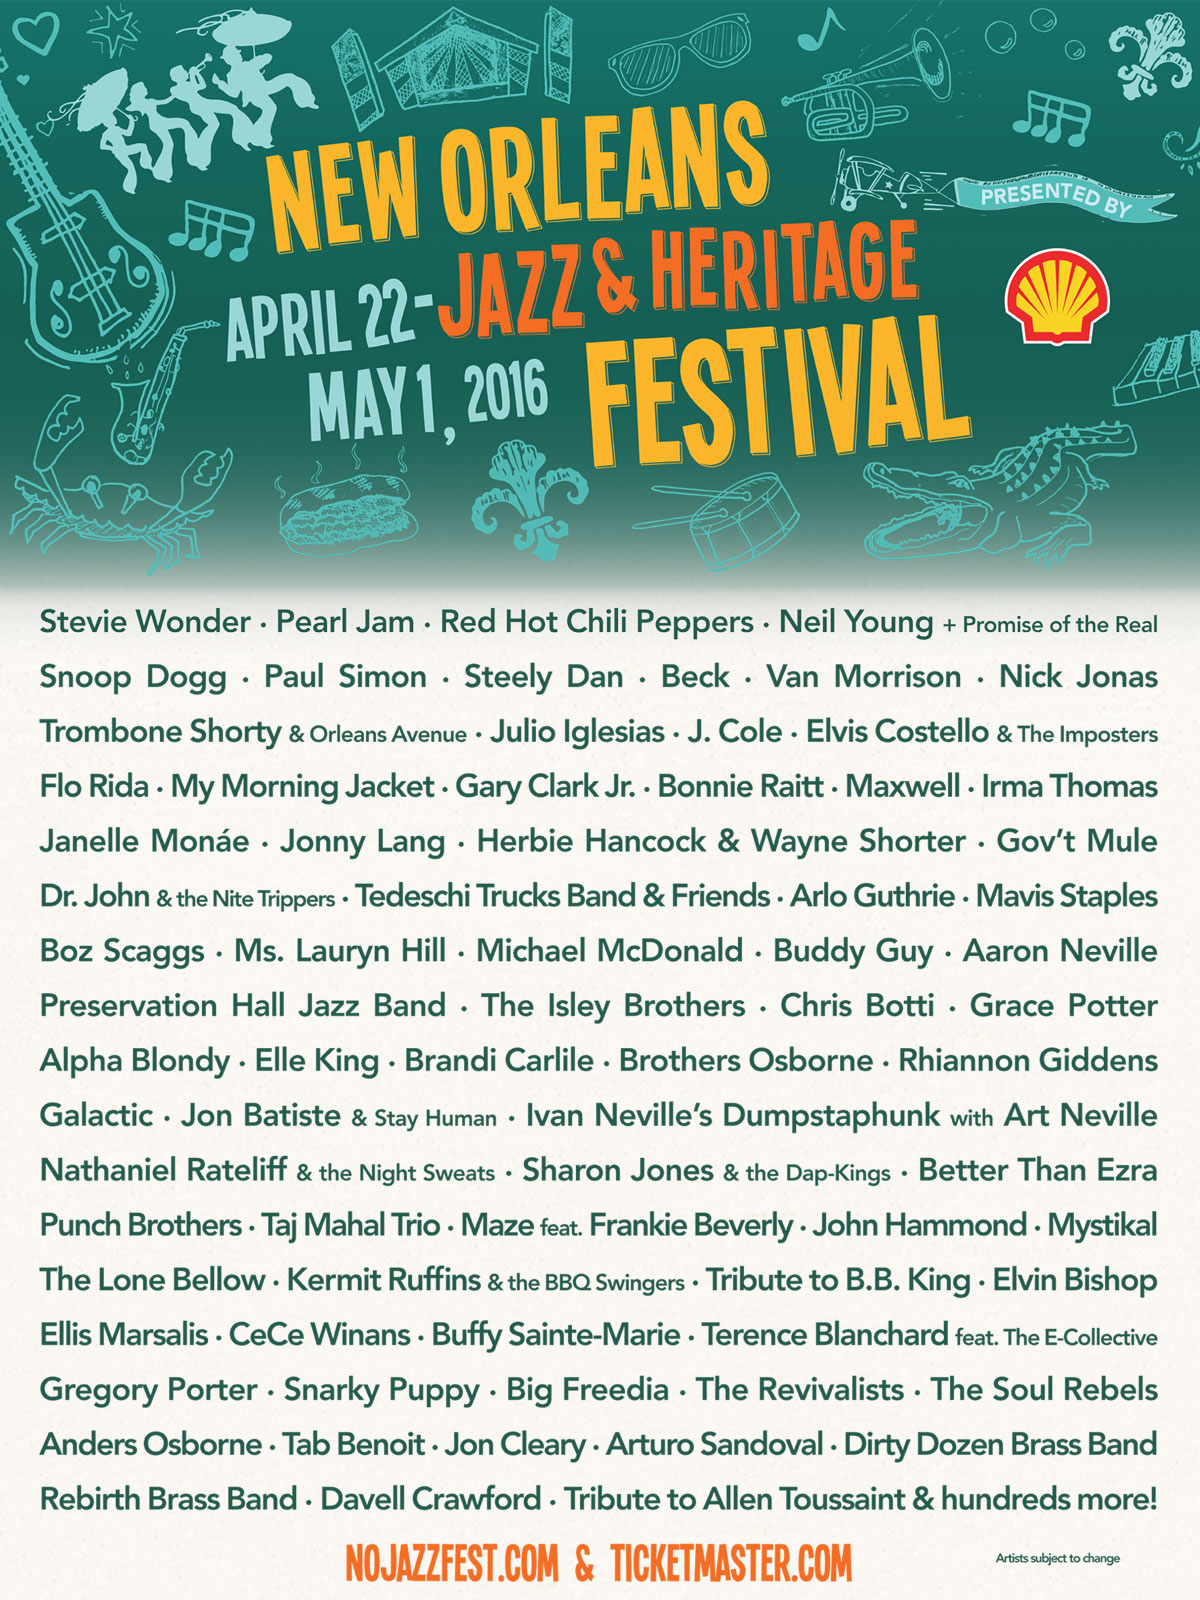 nojhf 16 1200 New Orleans Jazz Fest reveals 2016 lineup: Pearl Jam, Chili Peppers, Neil Young to headline